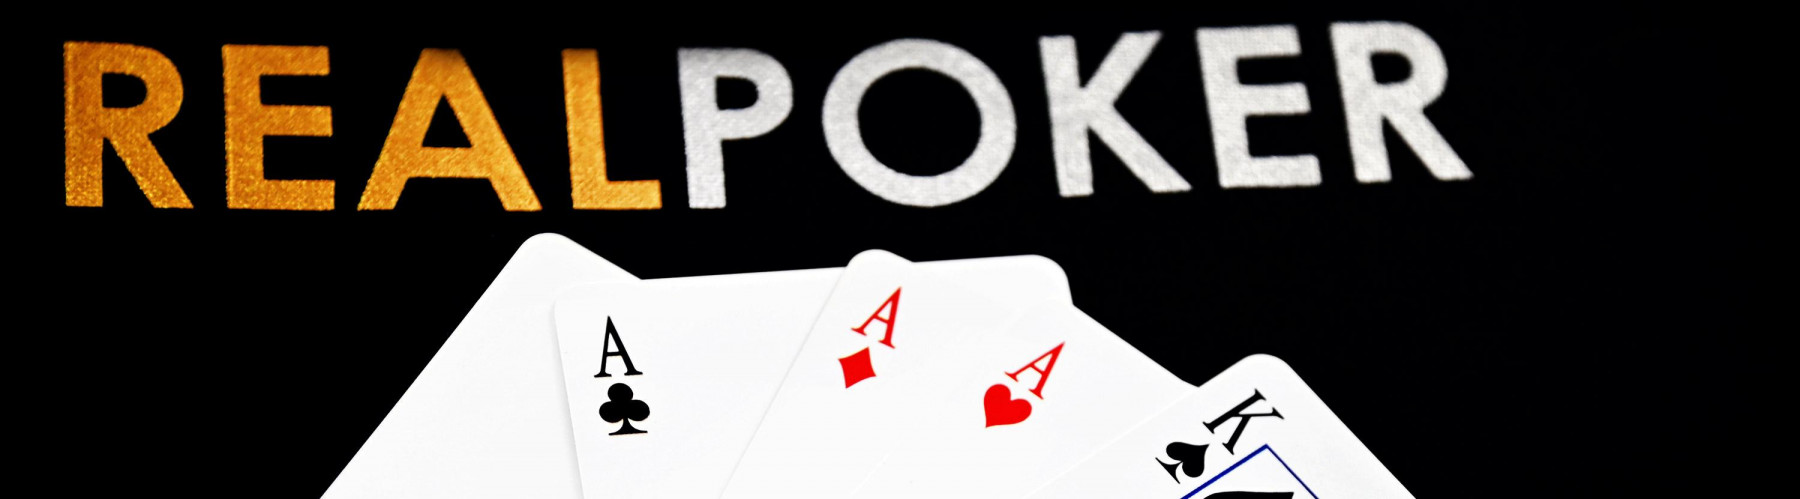 Poker for beginners